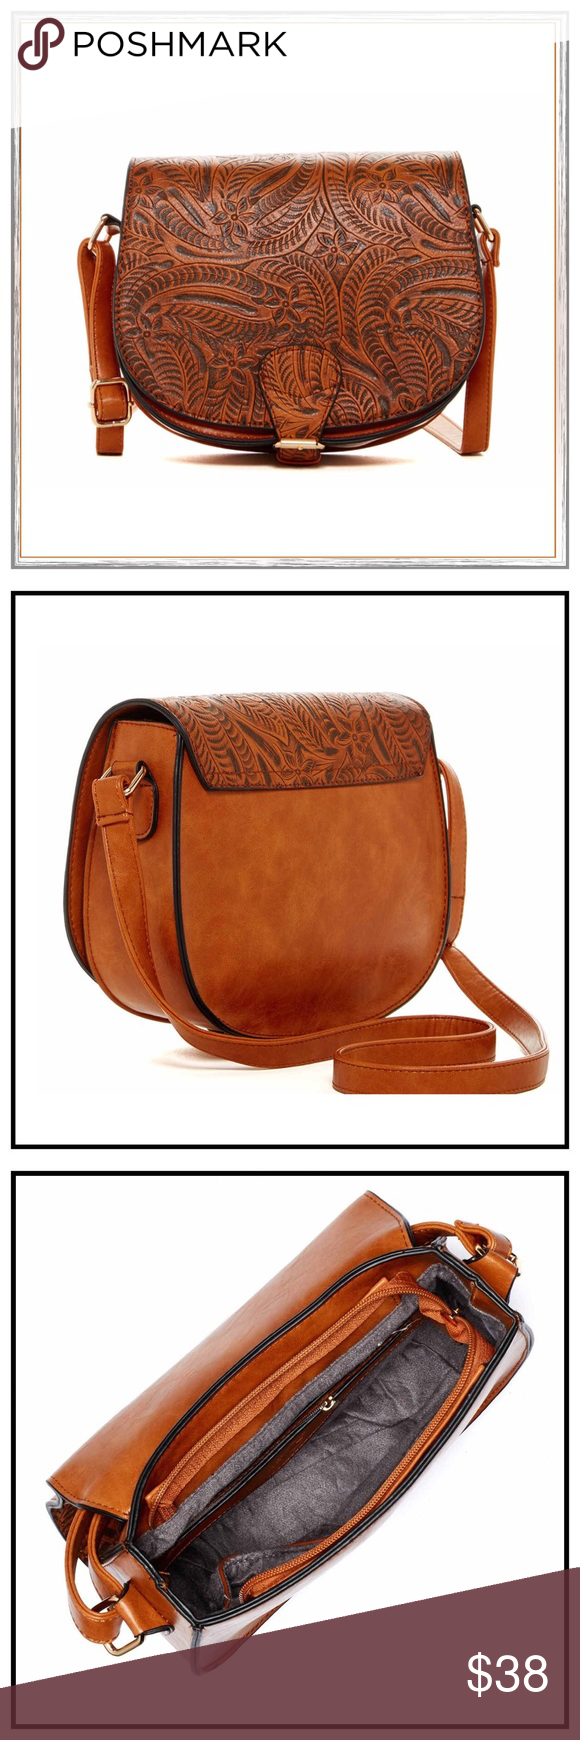 """✨Tooled Saddle Cross Body Bag✨ Rich, Textured Floral Print Composes A Classic Western-Inspired Saddle Cross Body Featuring A Spacious Interior For Everyday Use✨Fold Over Flap With Buckle Detail And Magnetic Closure✨Adjustable Shoulder Strap Strap✨Top Zip Closure✨Interior Has 1 Zip Pocket And 2 Media Pockets✨Approx 8""""H X 9""""W X 3.25""""D✨Approx 10-20"""" Strap Drop✨Polyurethane Exterior And Fabric Interior Lining✨NWT✨Color is Cognac✨ Nu-G Bags Crossbody Bags"""